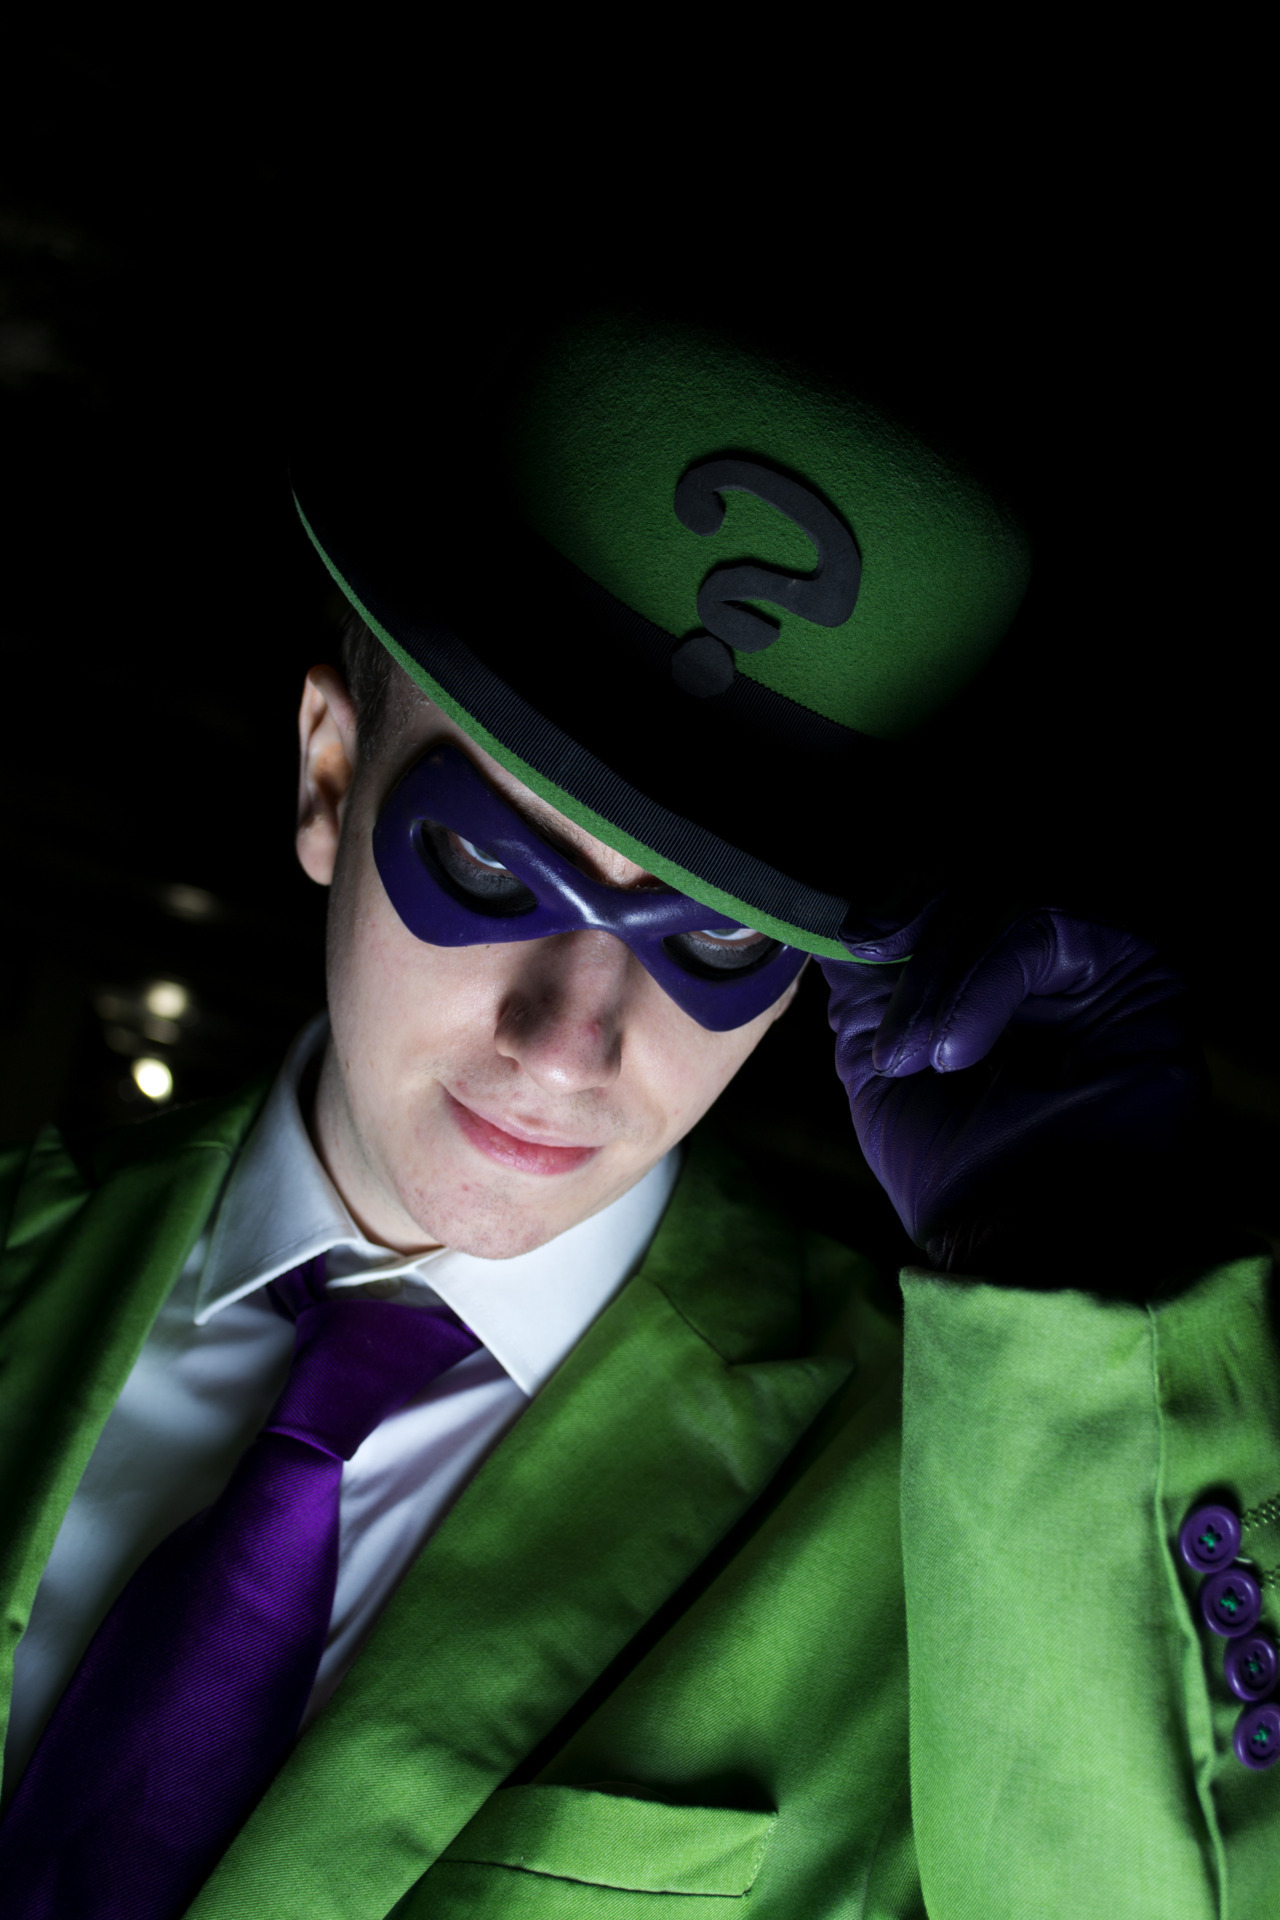 miraclemango:  roguewizard:  hoperidesforeveralone:  HNNNGGG Riddler - http://roguewizard.tumblr.com Photographer - Me  another of me from LSCC, also i really need to upgrade the ? on my hat  I'm just gonnaPut this on my blog too  YOU KEEP YOUR HANDS OFF MY MAN.